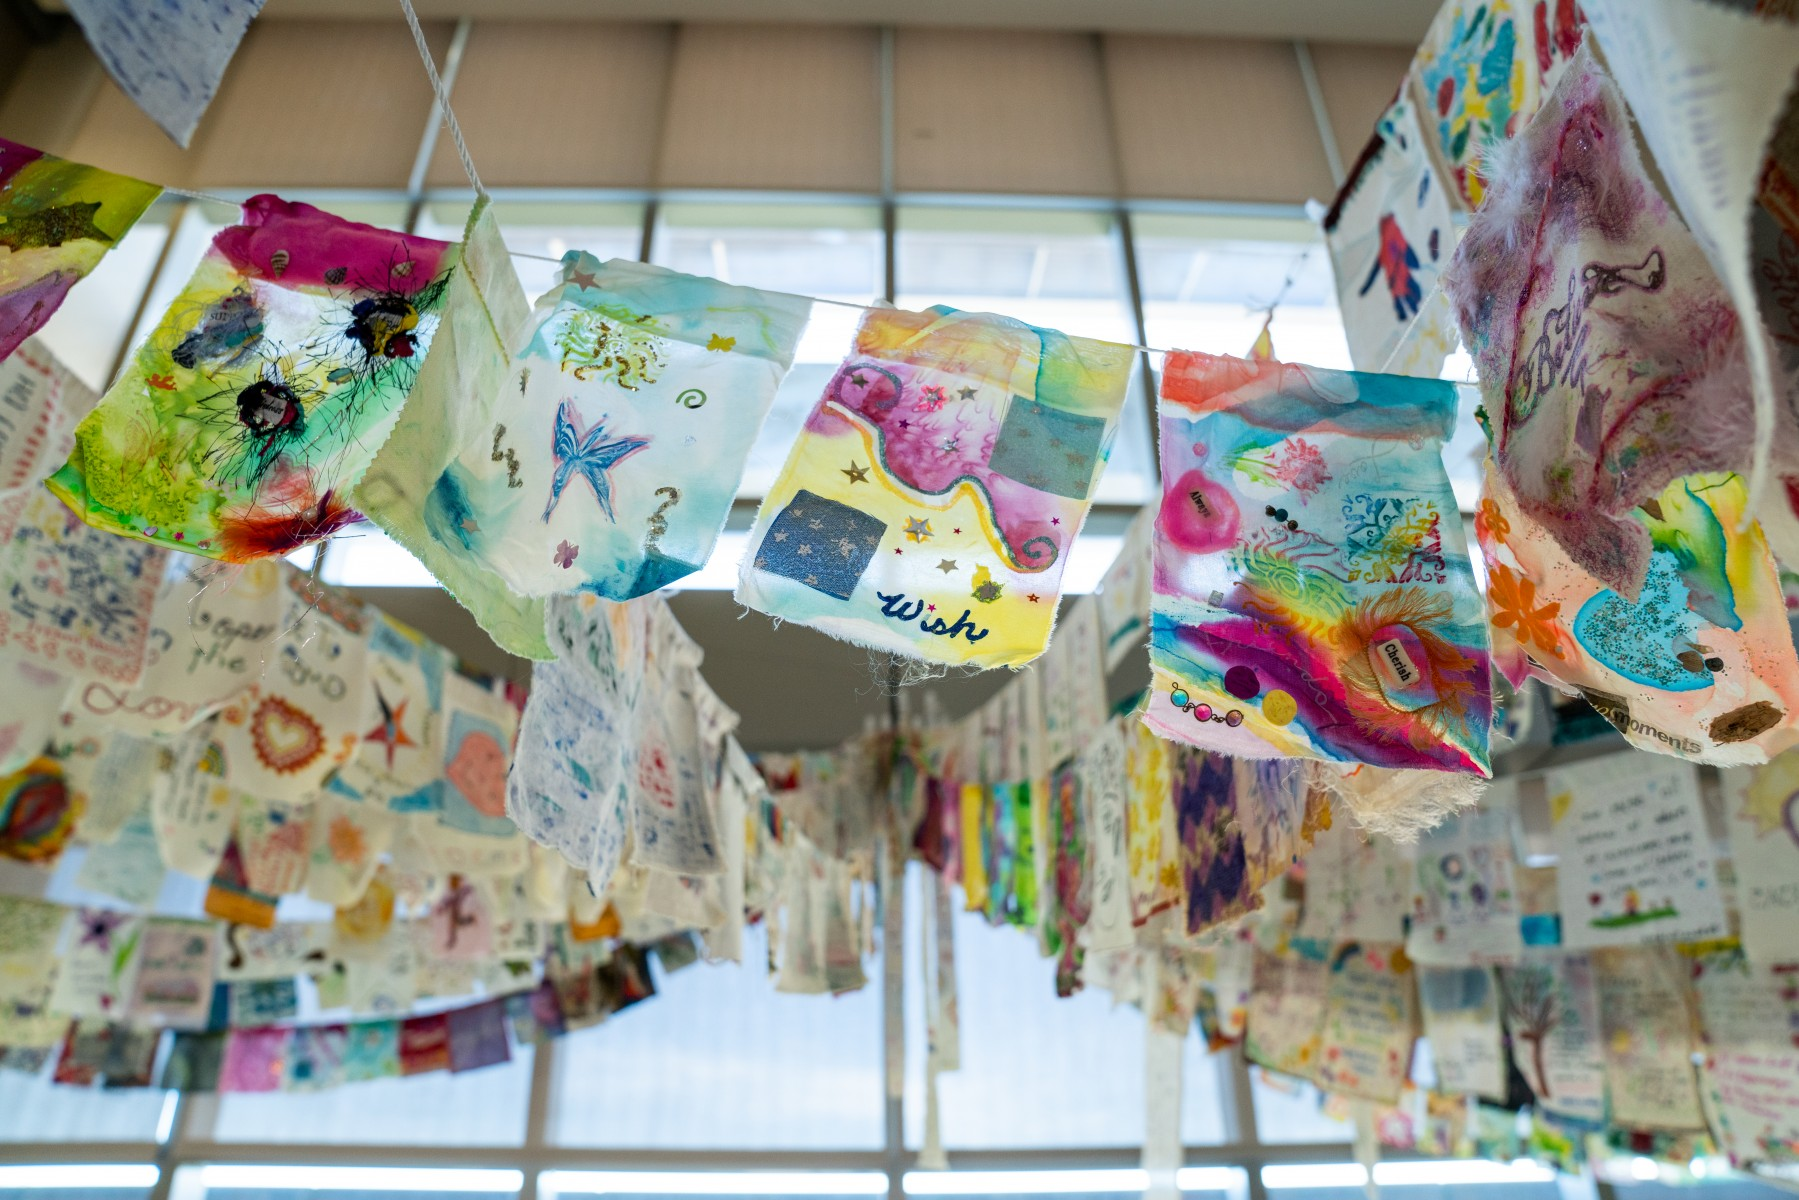 Hope Made Visible is a new art exhibit in the University Library consisting of close to 1,500 art flags made by cancer patients and their loved ones from around the world. Photo by Chandler Oriente